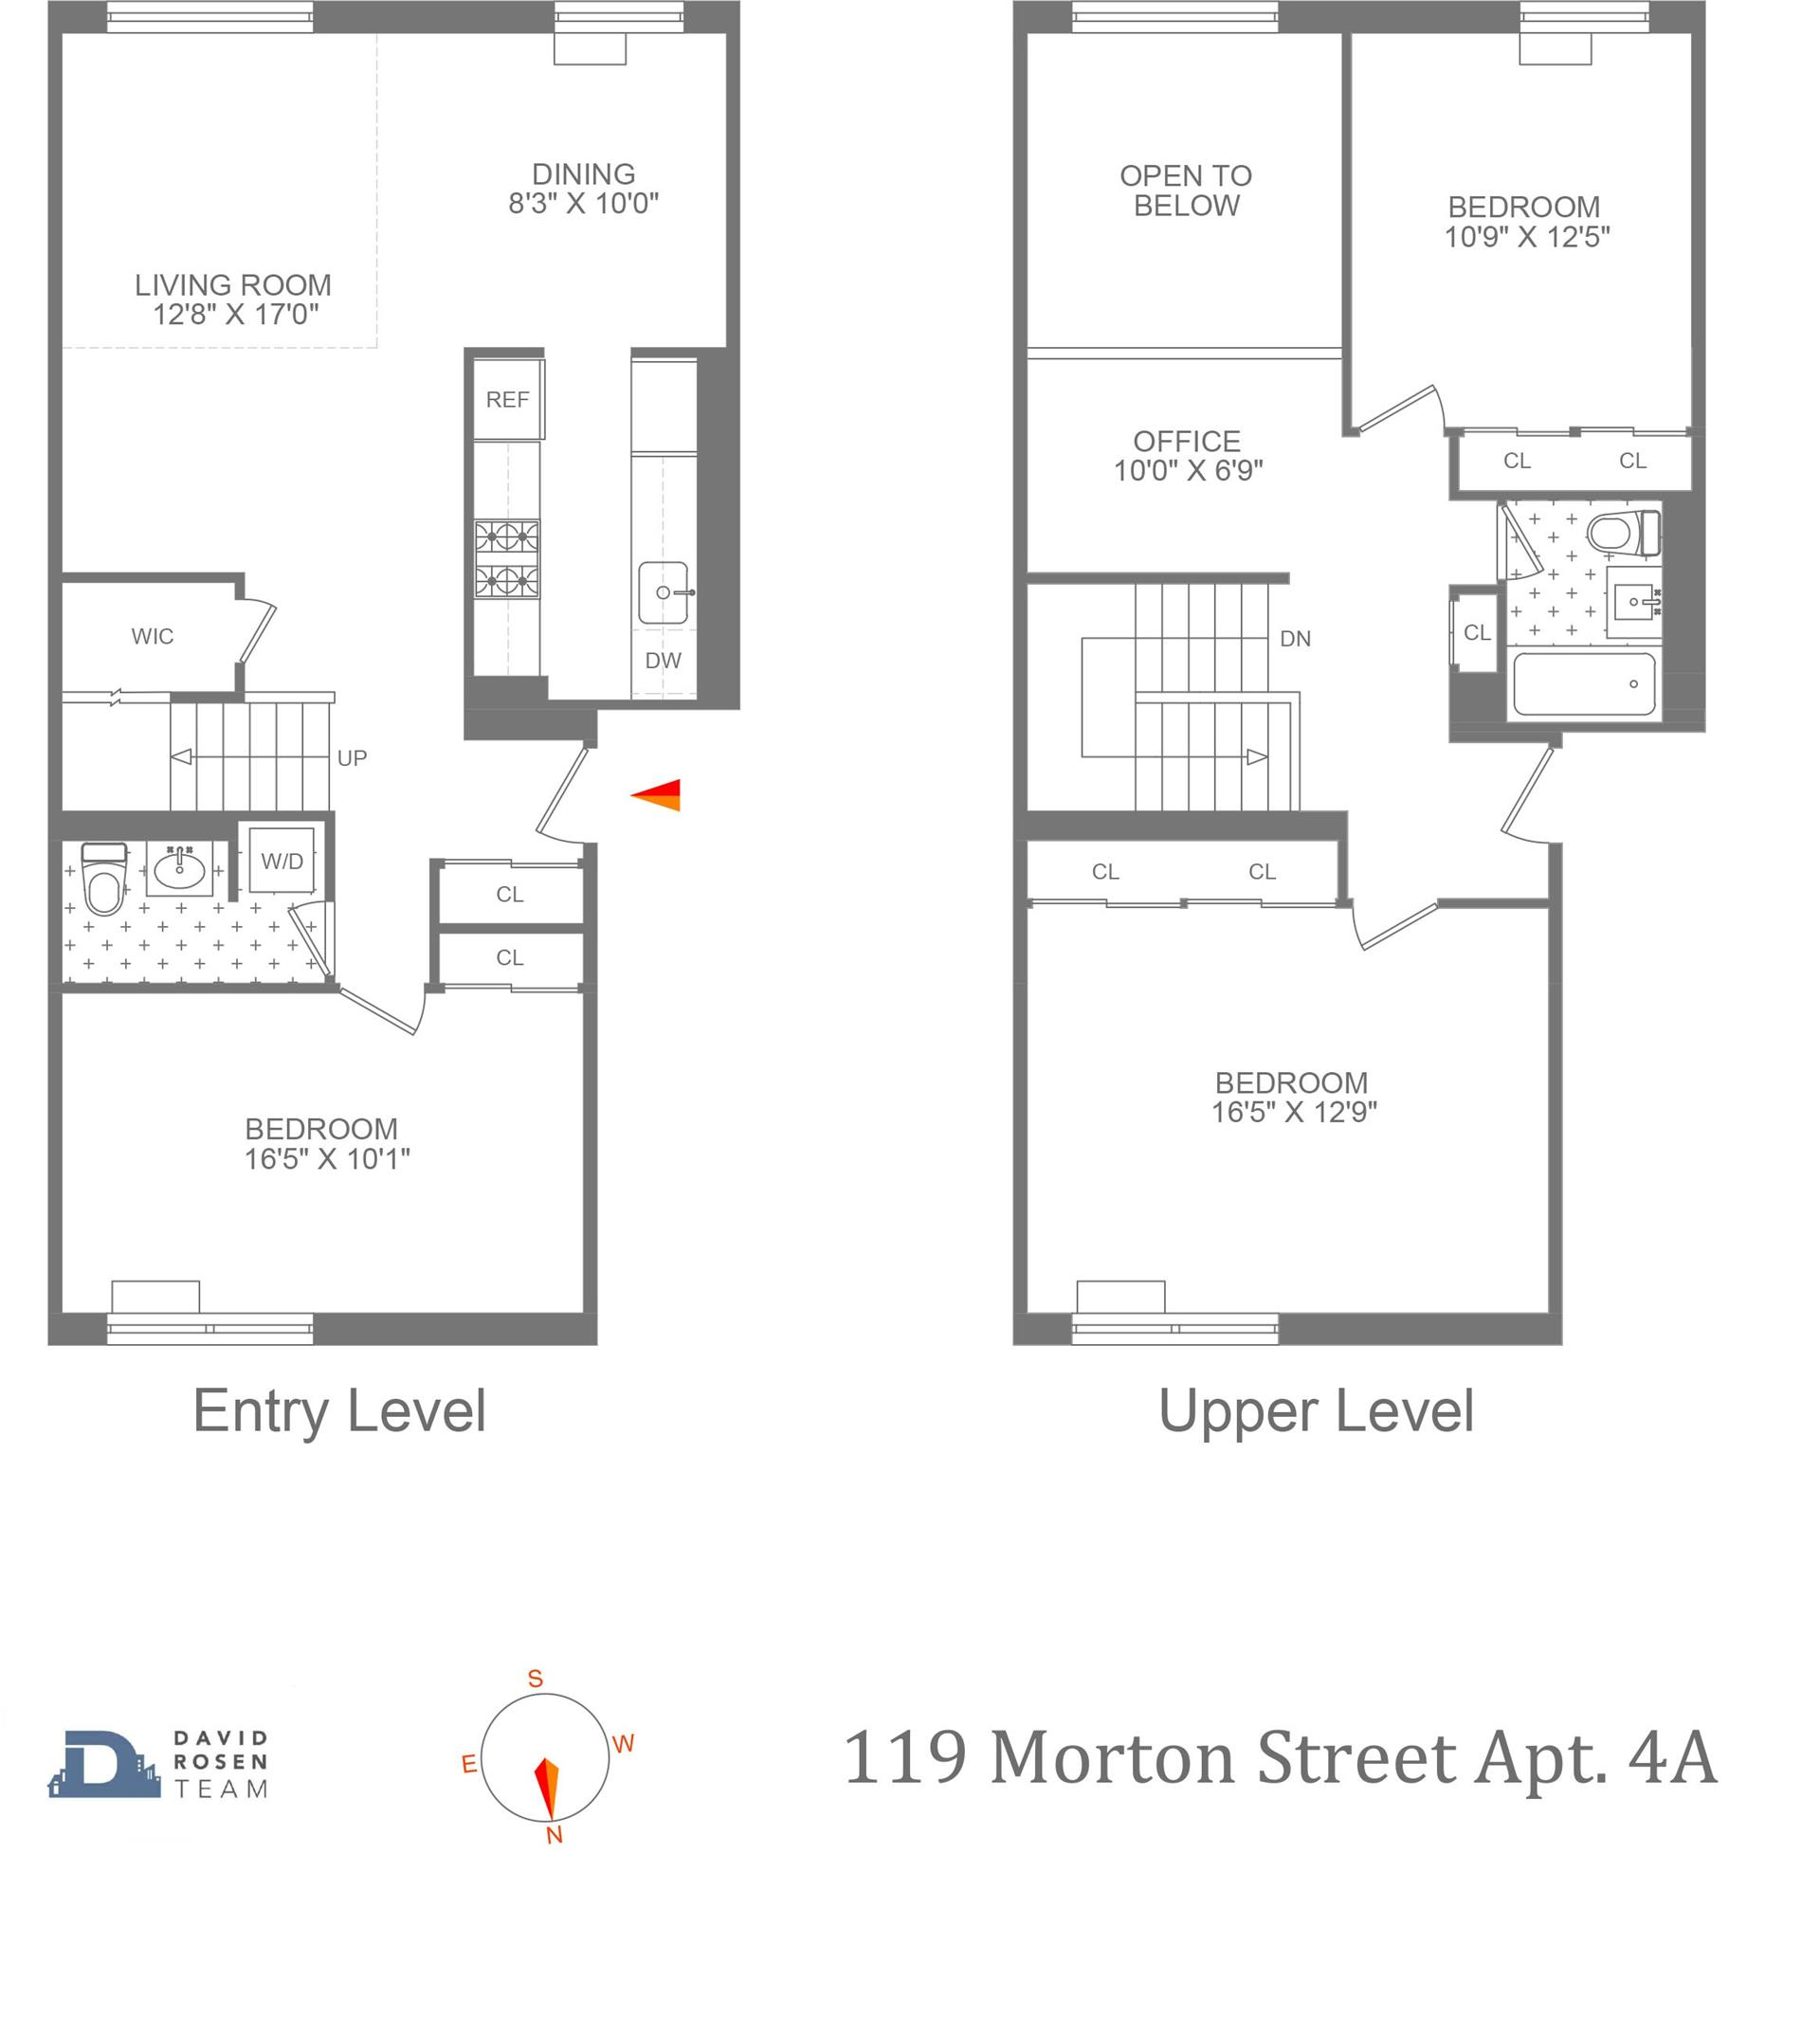 Floor plan of 119 Morton St, 4A - West Village - Meatpacking District, New York